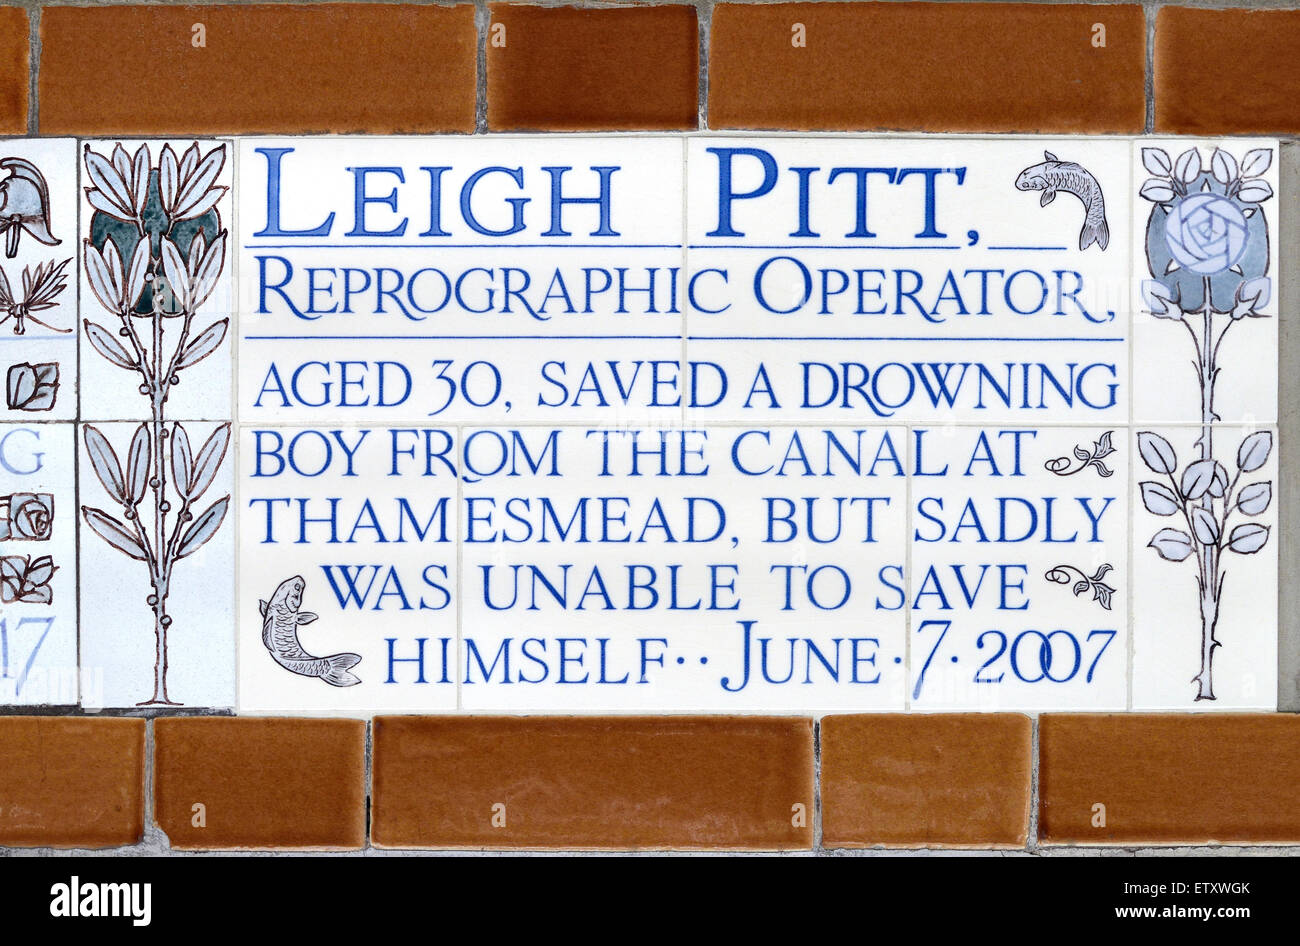 London, England, UK. The Memorial to Heroic Self Sacrifice in Postman's Park, north of St Paul's Cathedral. - Stock Image